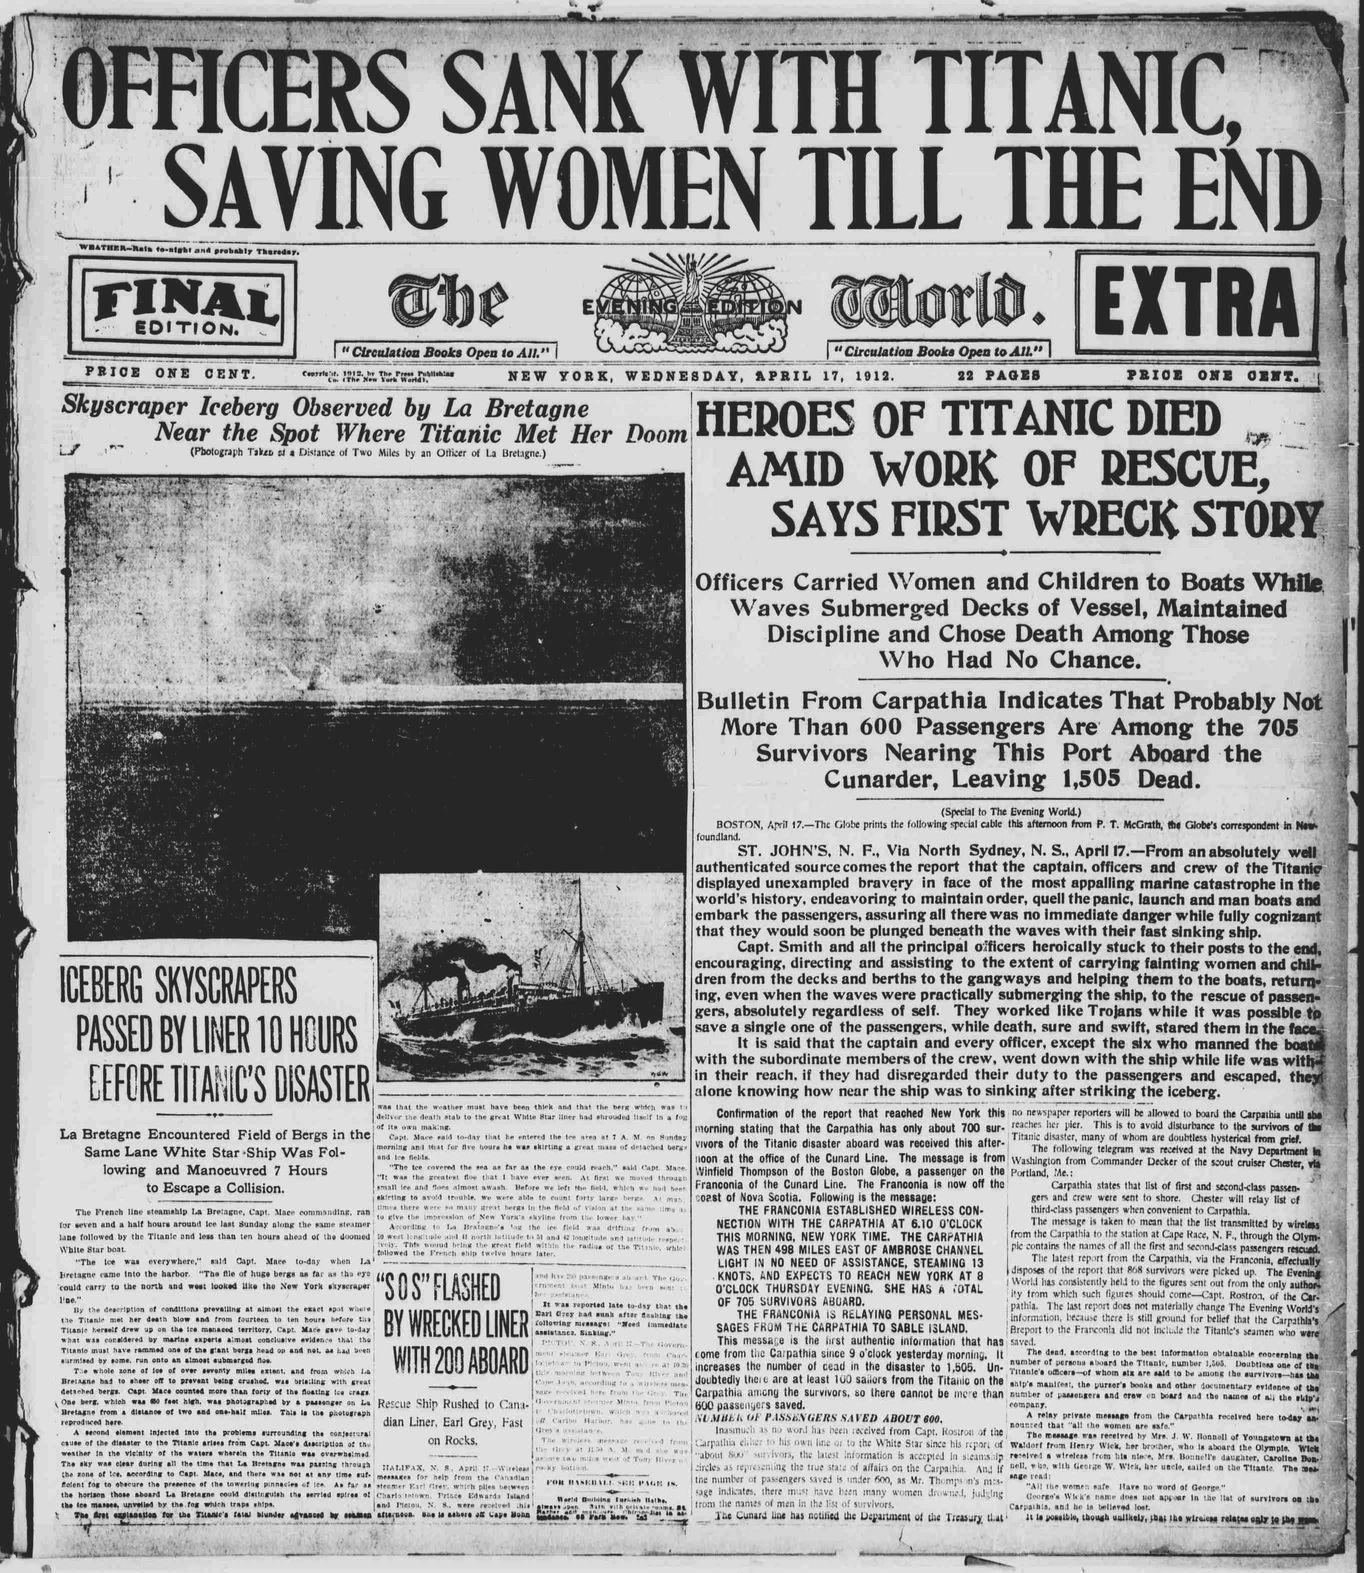 Titanic Newspaper Front Page 1912-04-17 The Evening World (New York, NY), April 17, 1912, Final Edition-Extra, Page 1